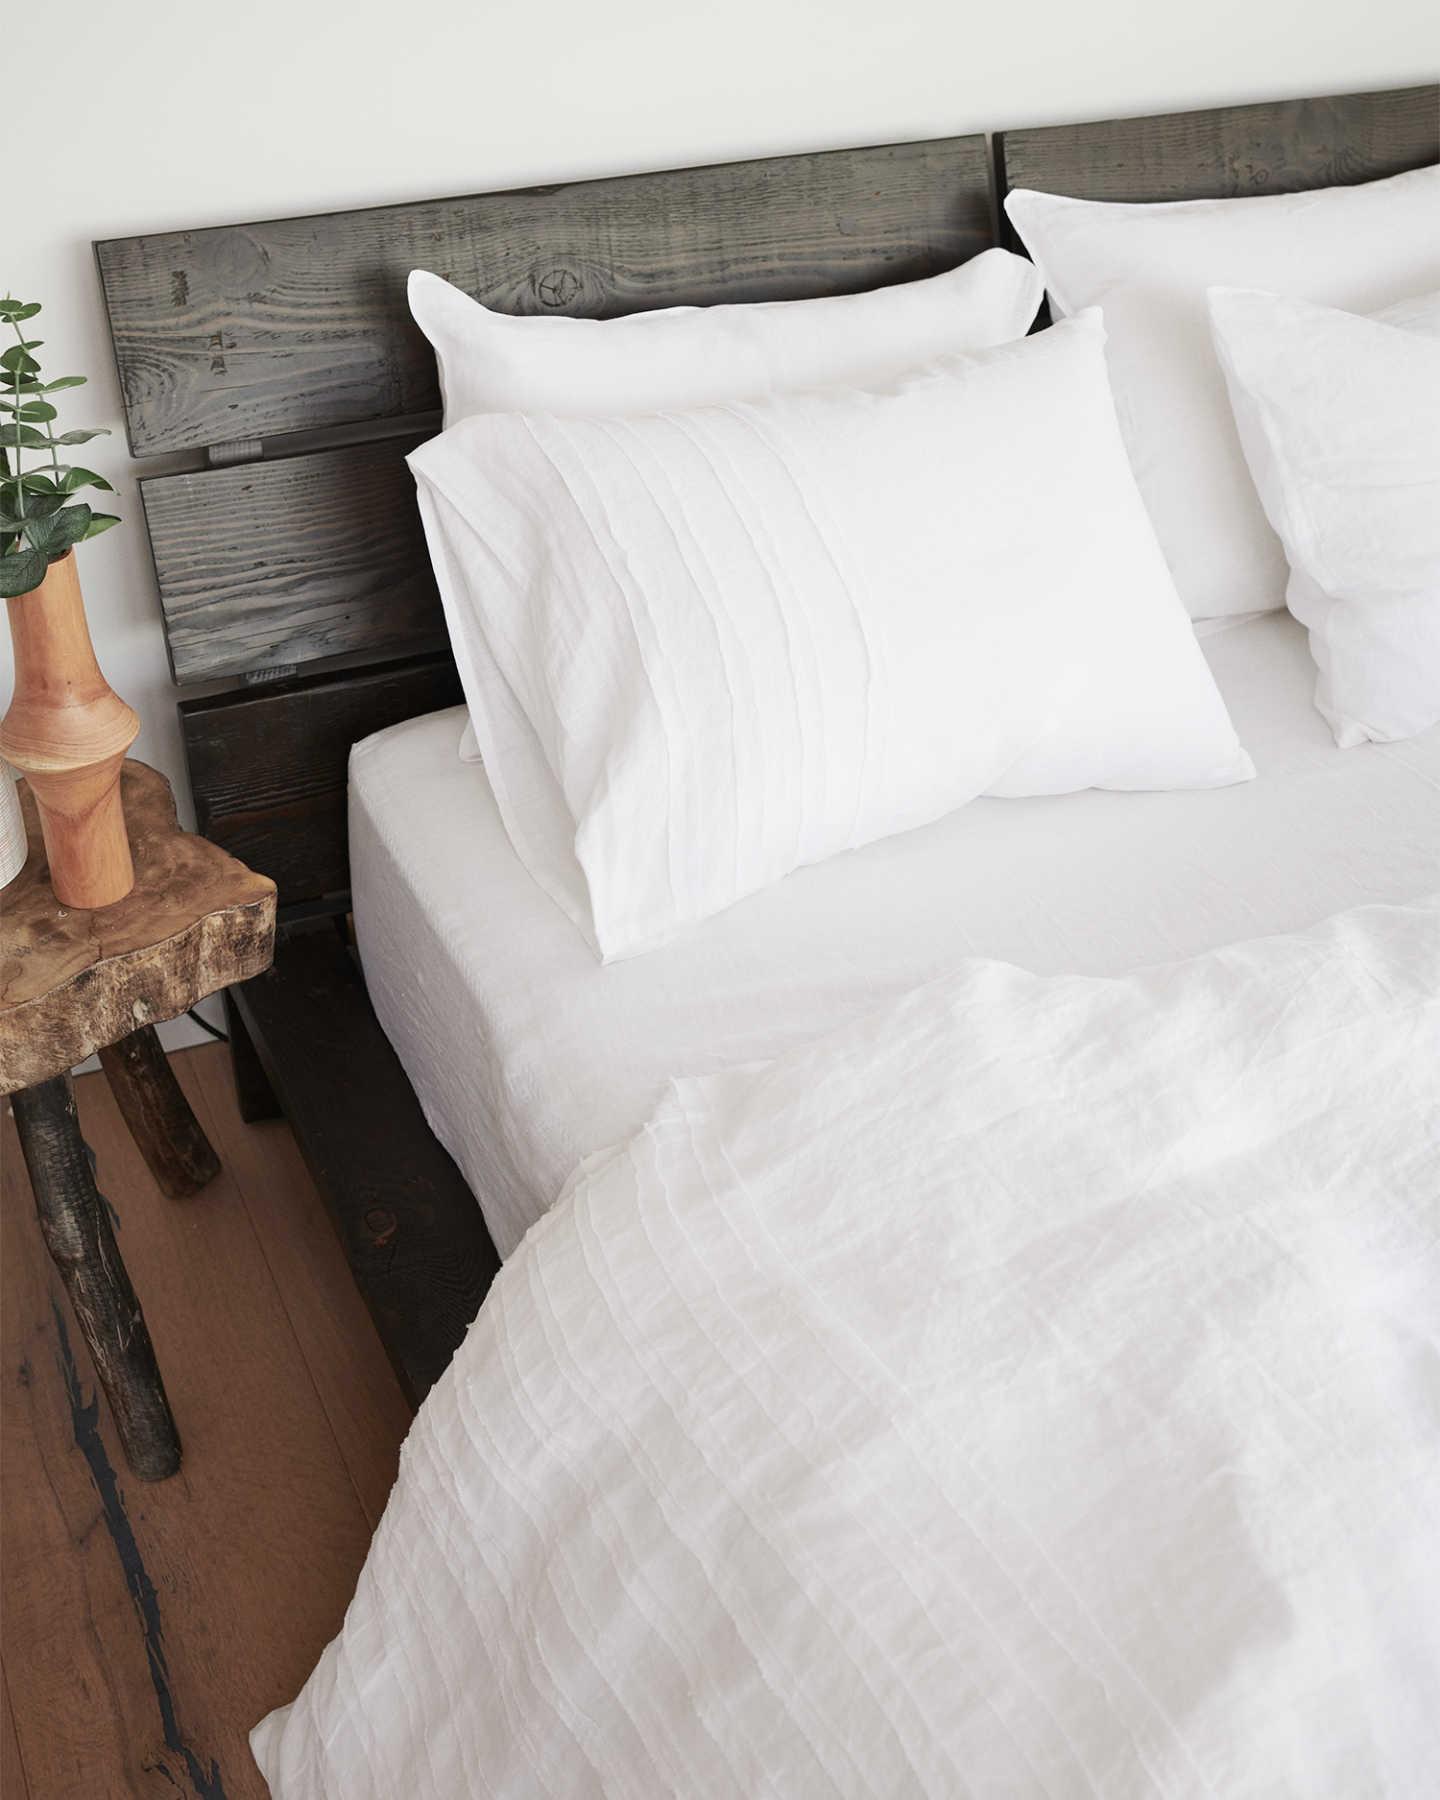 French Linen Duvet Cover Set - Rouching - 1